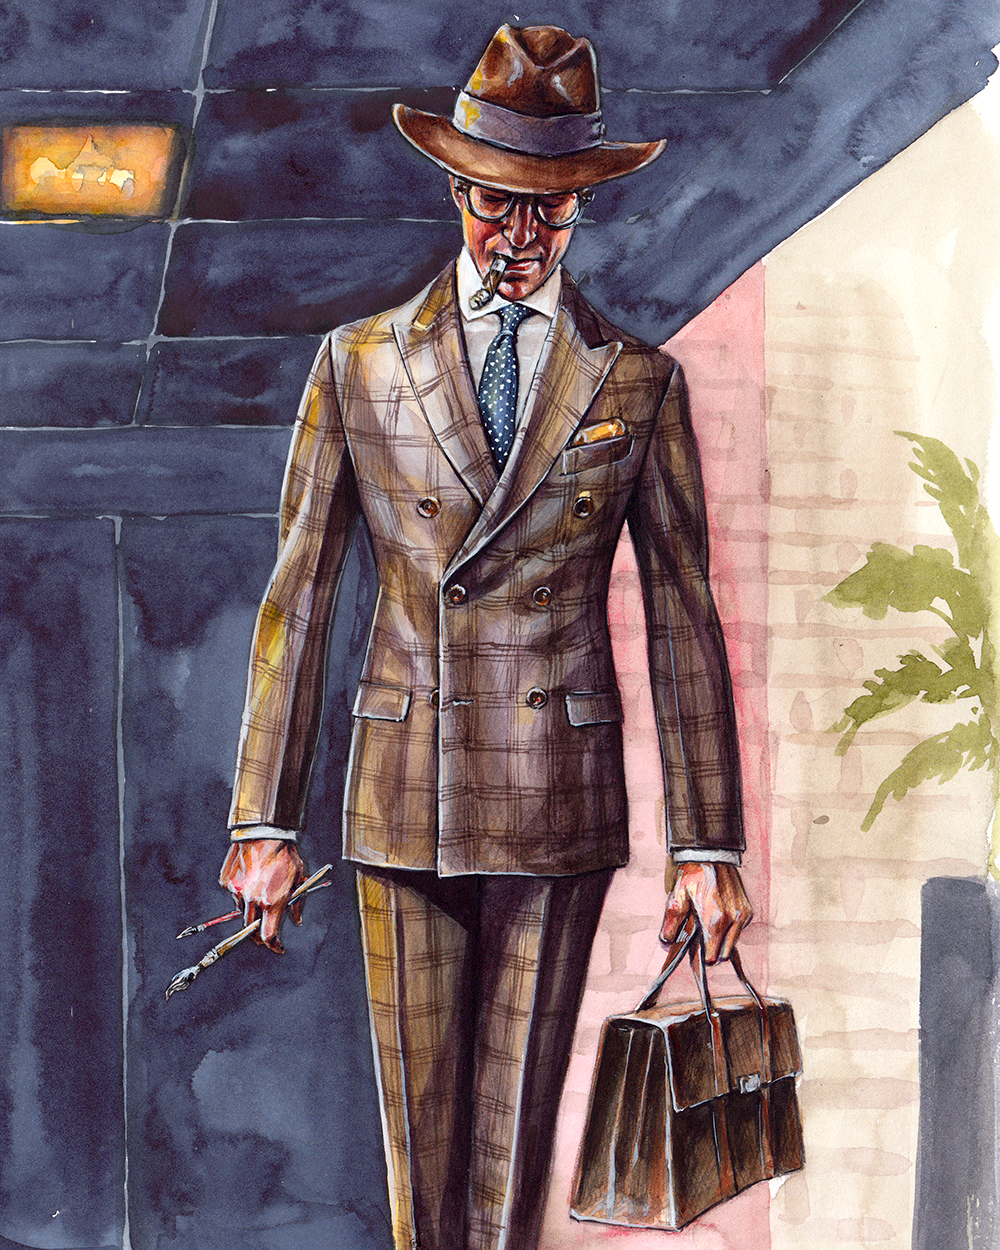 The Illustrator, menswear illustration by Sunflowerman